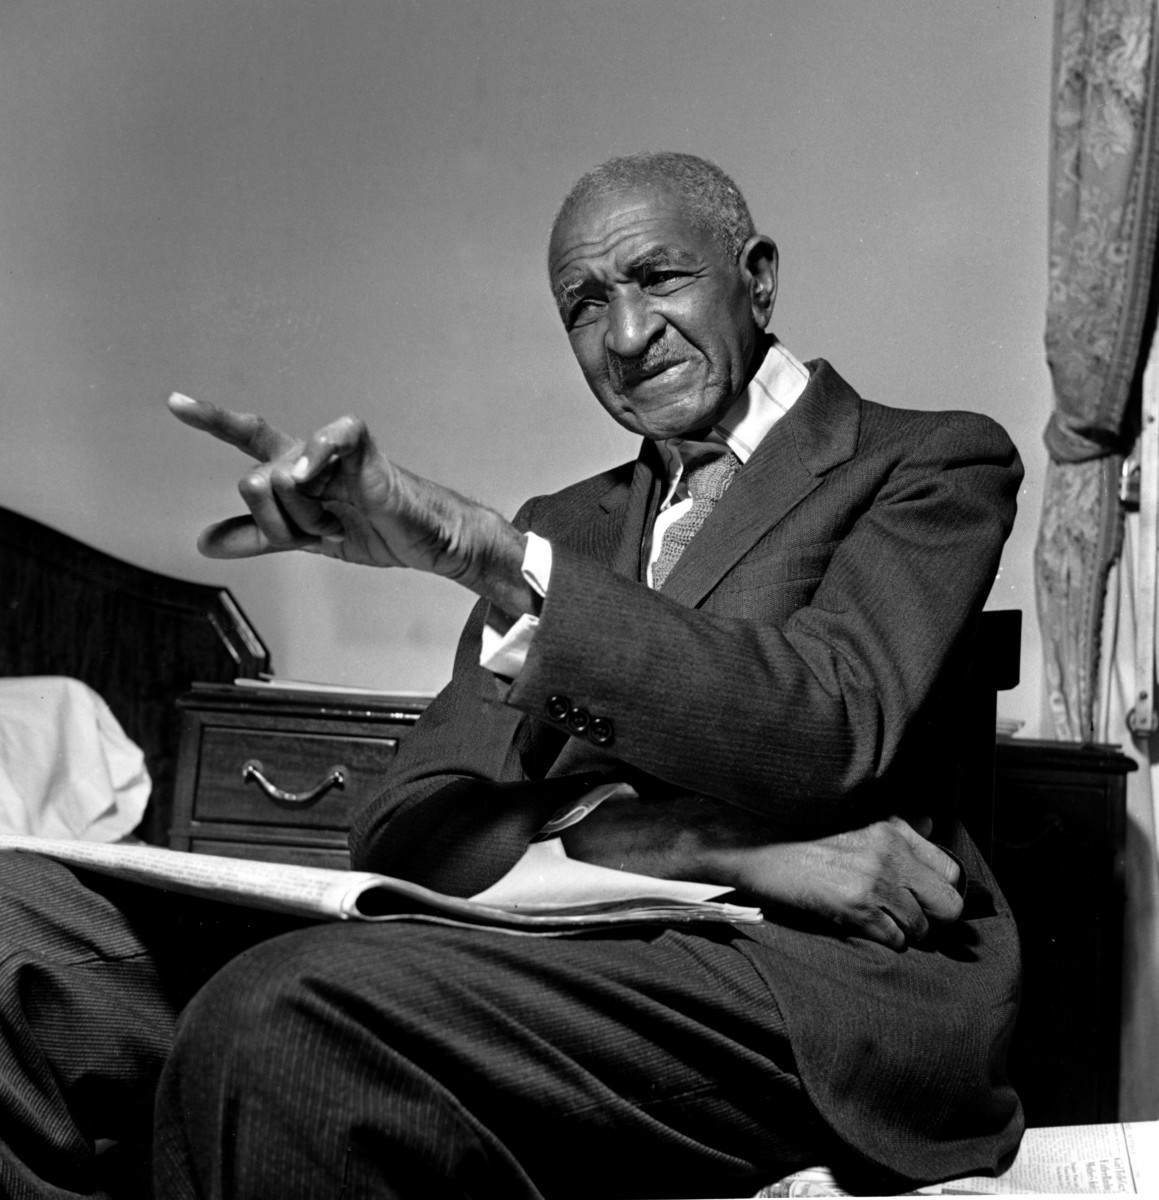 George Washington Carver: